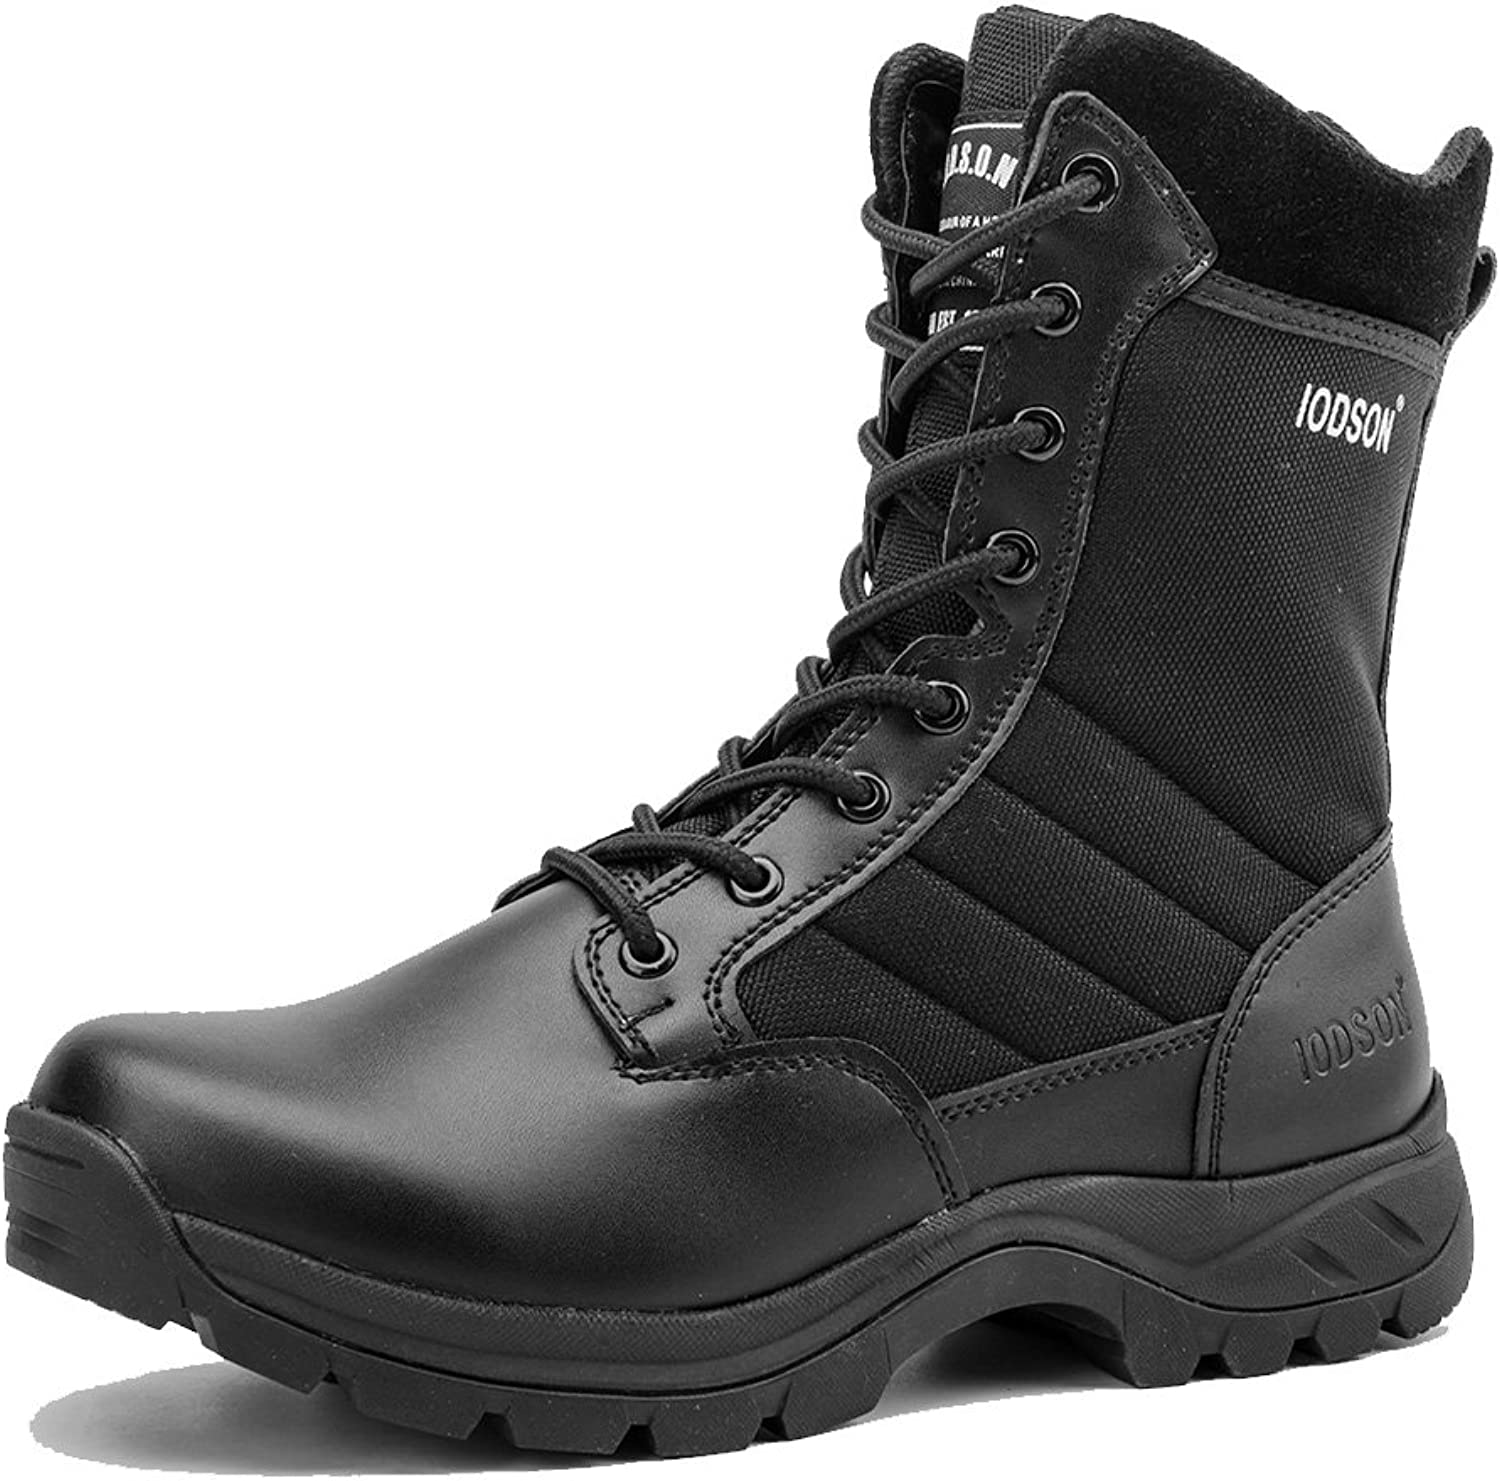 IODSON 928 Ultralight Combat Boots, Men's Tactical Military Boot Footwear, Desert Ankle Army shoes with Side Zipper